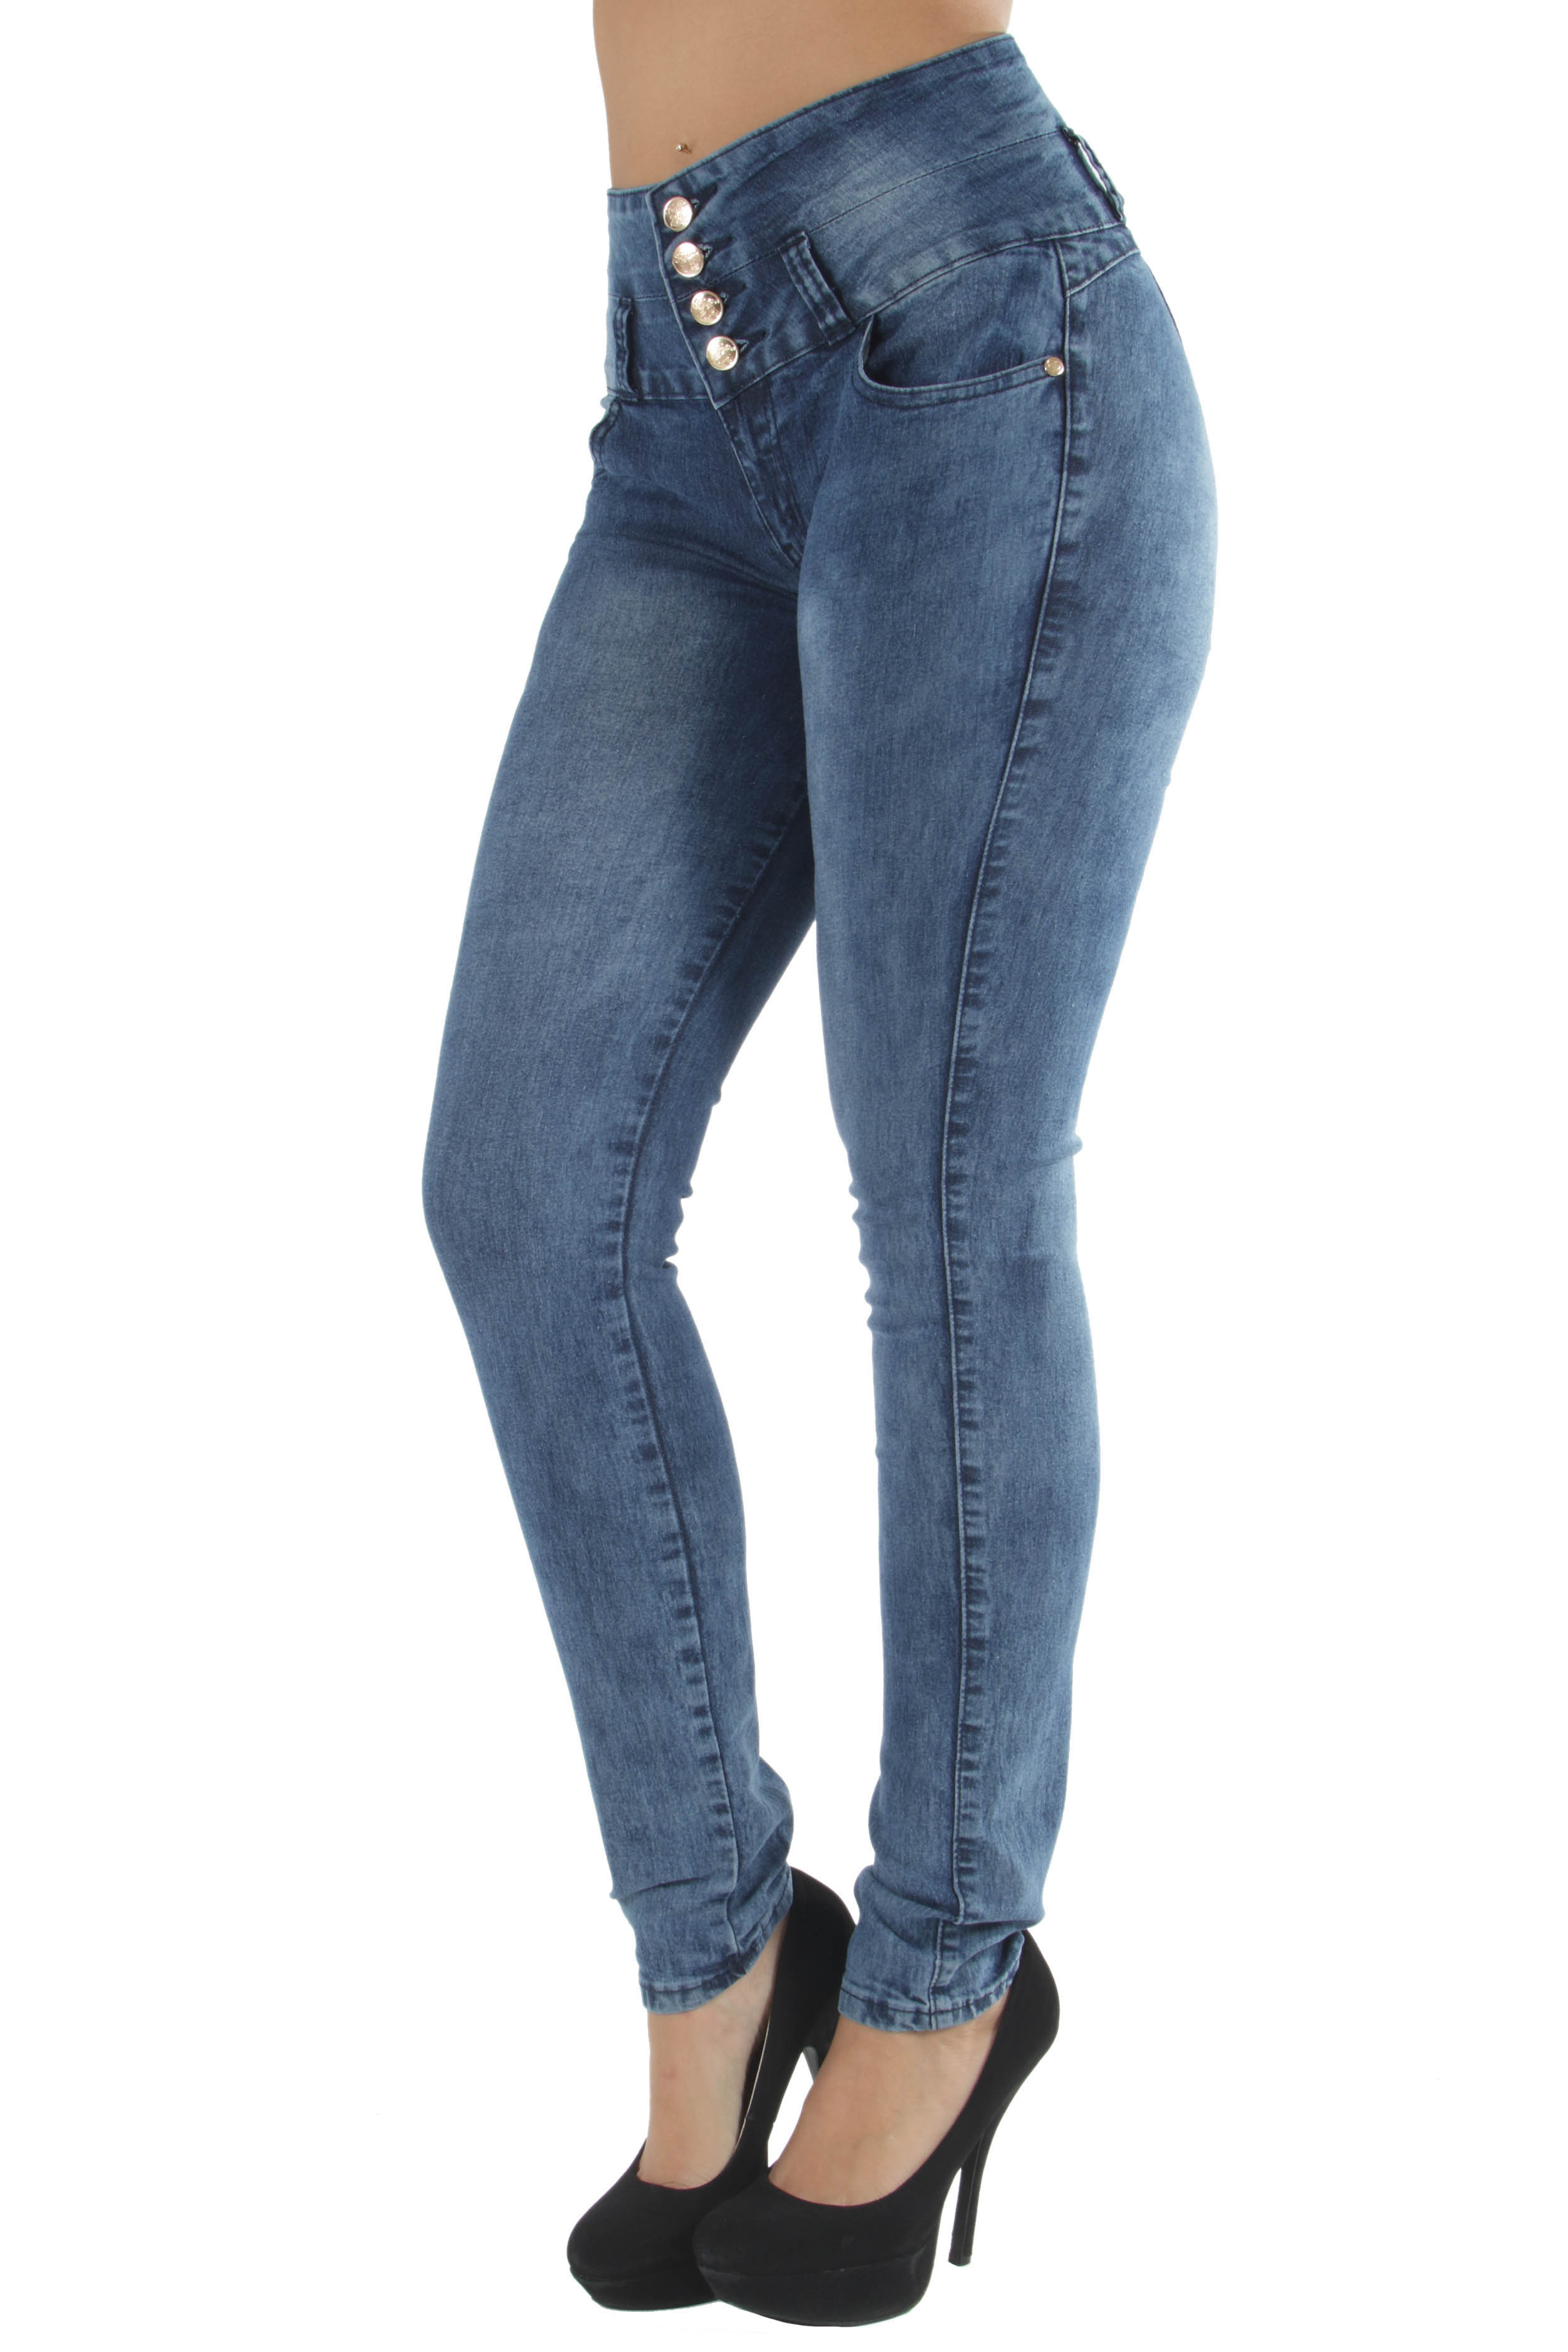 N1386P - Plus Size, Butt Lifting, Levanta Cola, High Waist Sexy Skinny Jeans